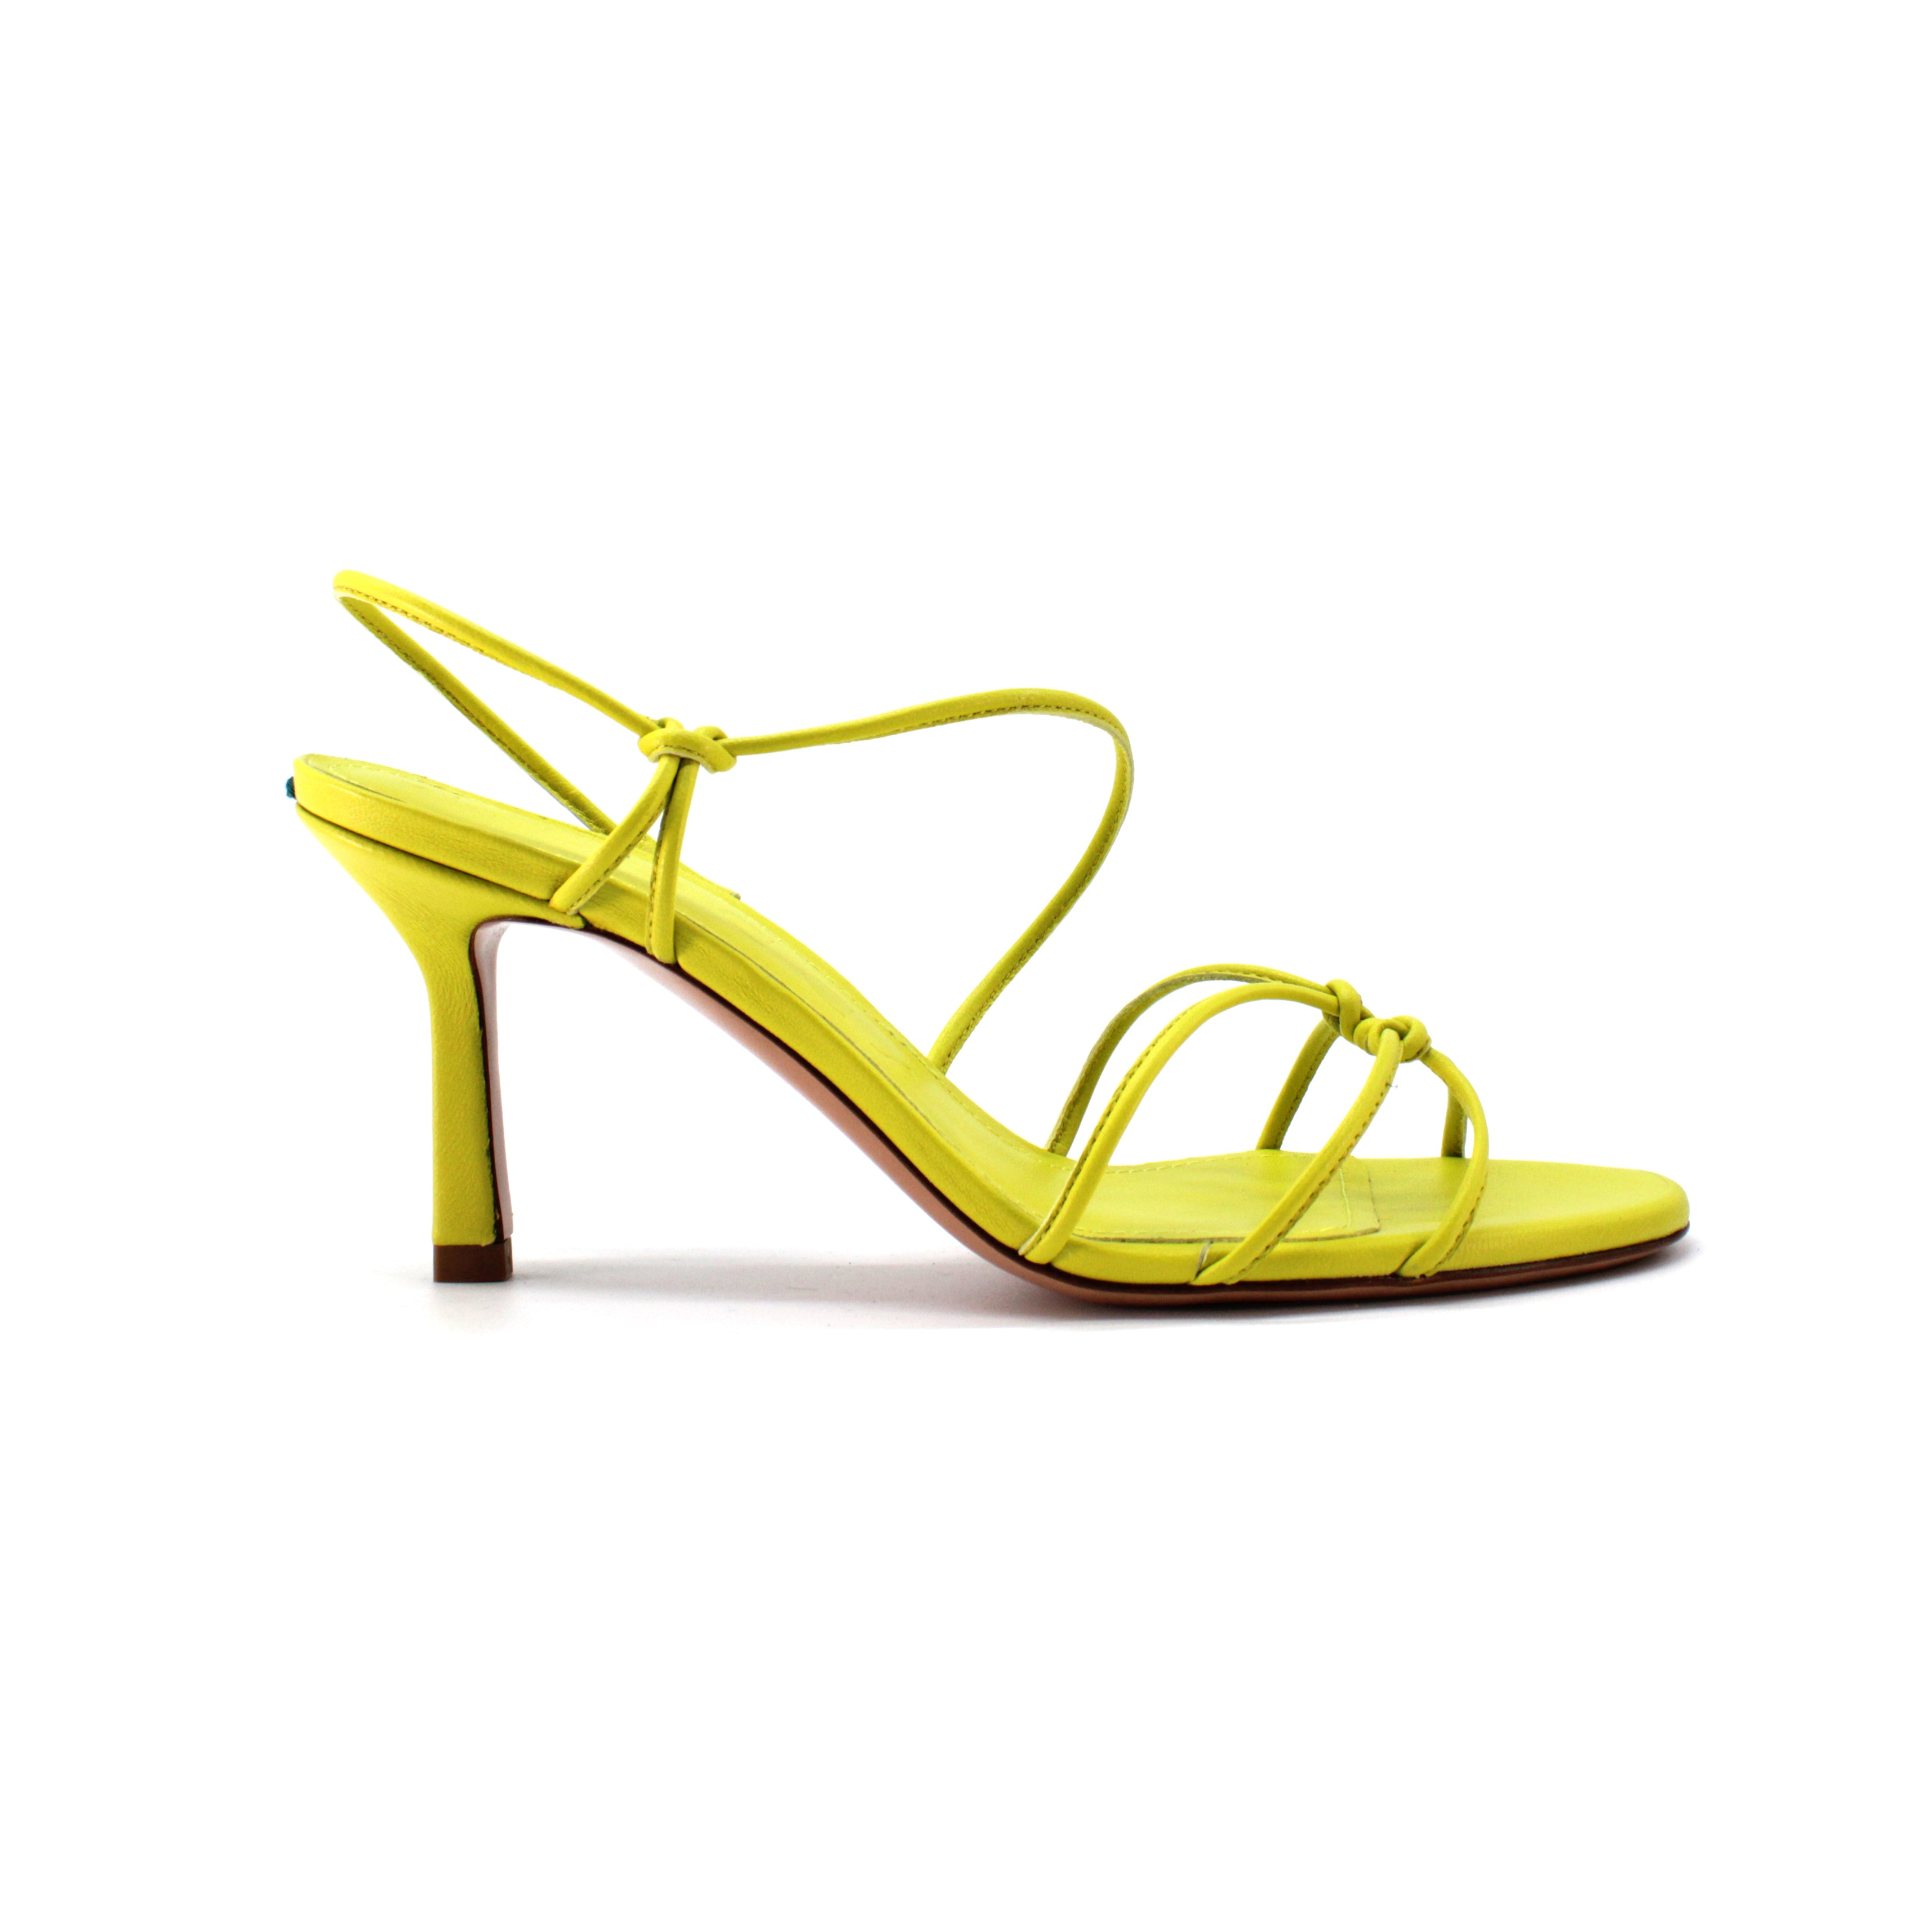 Sandalo mignon in nappa color amarillo